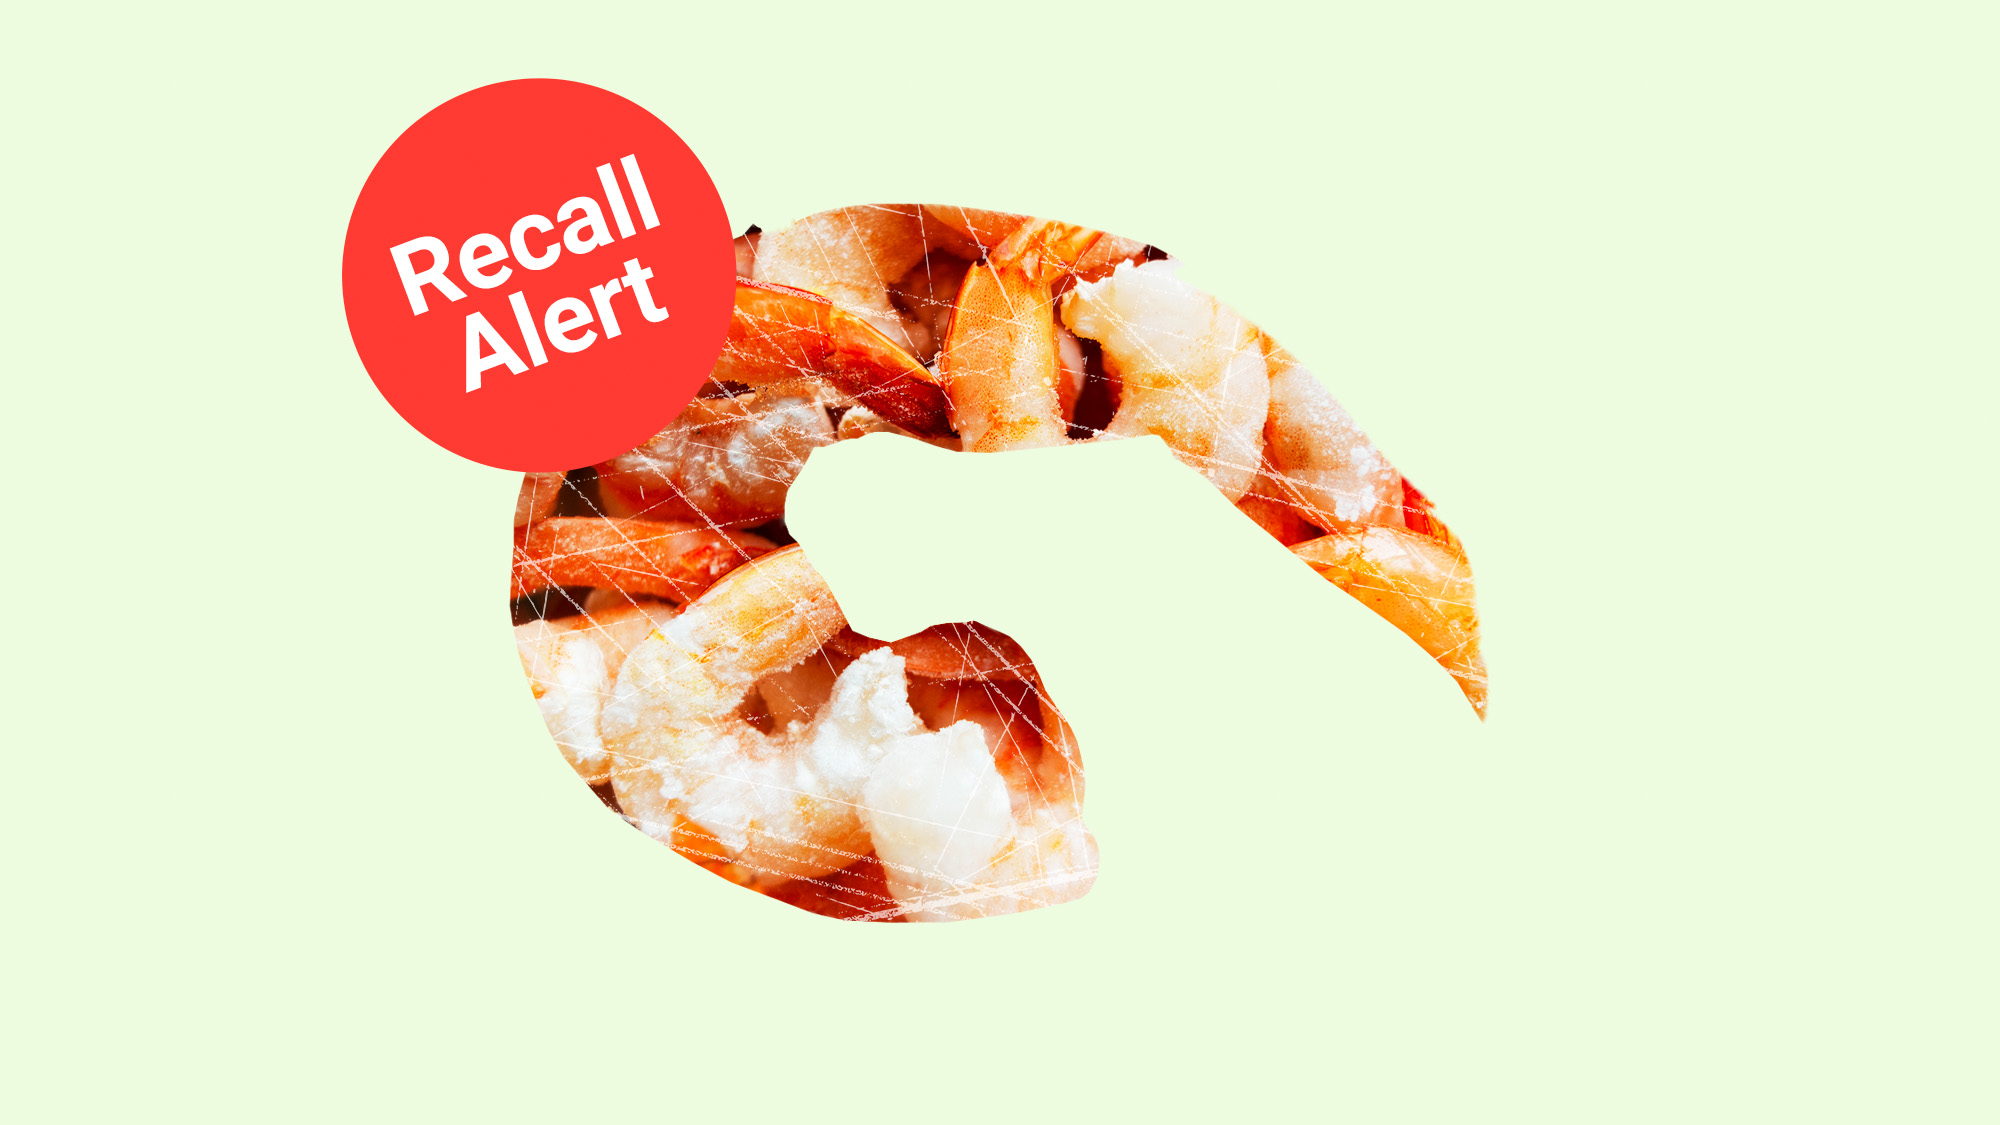 A shape of a shrimp with frozen shrimp inside, overlaid by a recall button